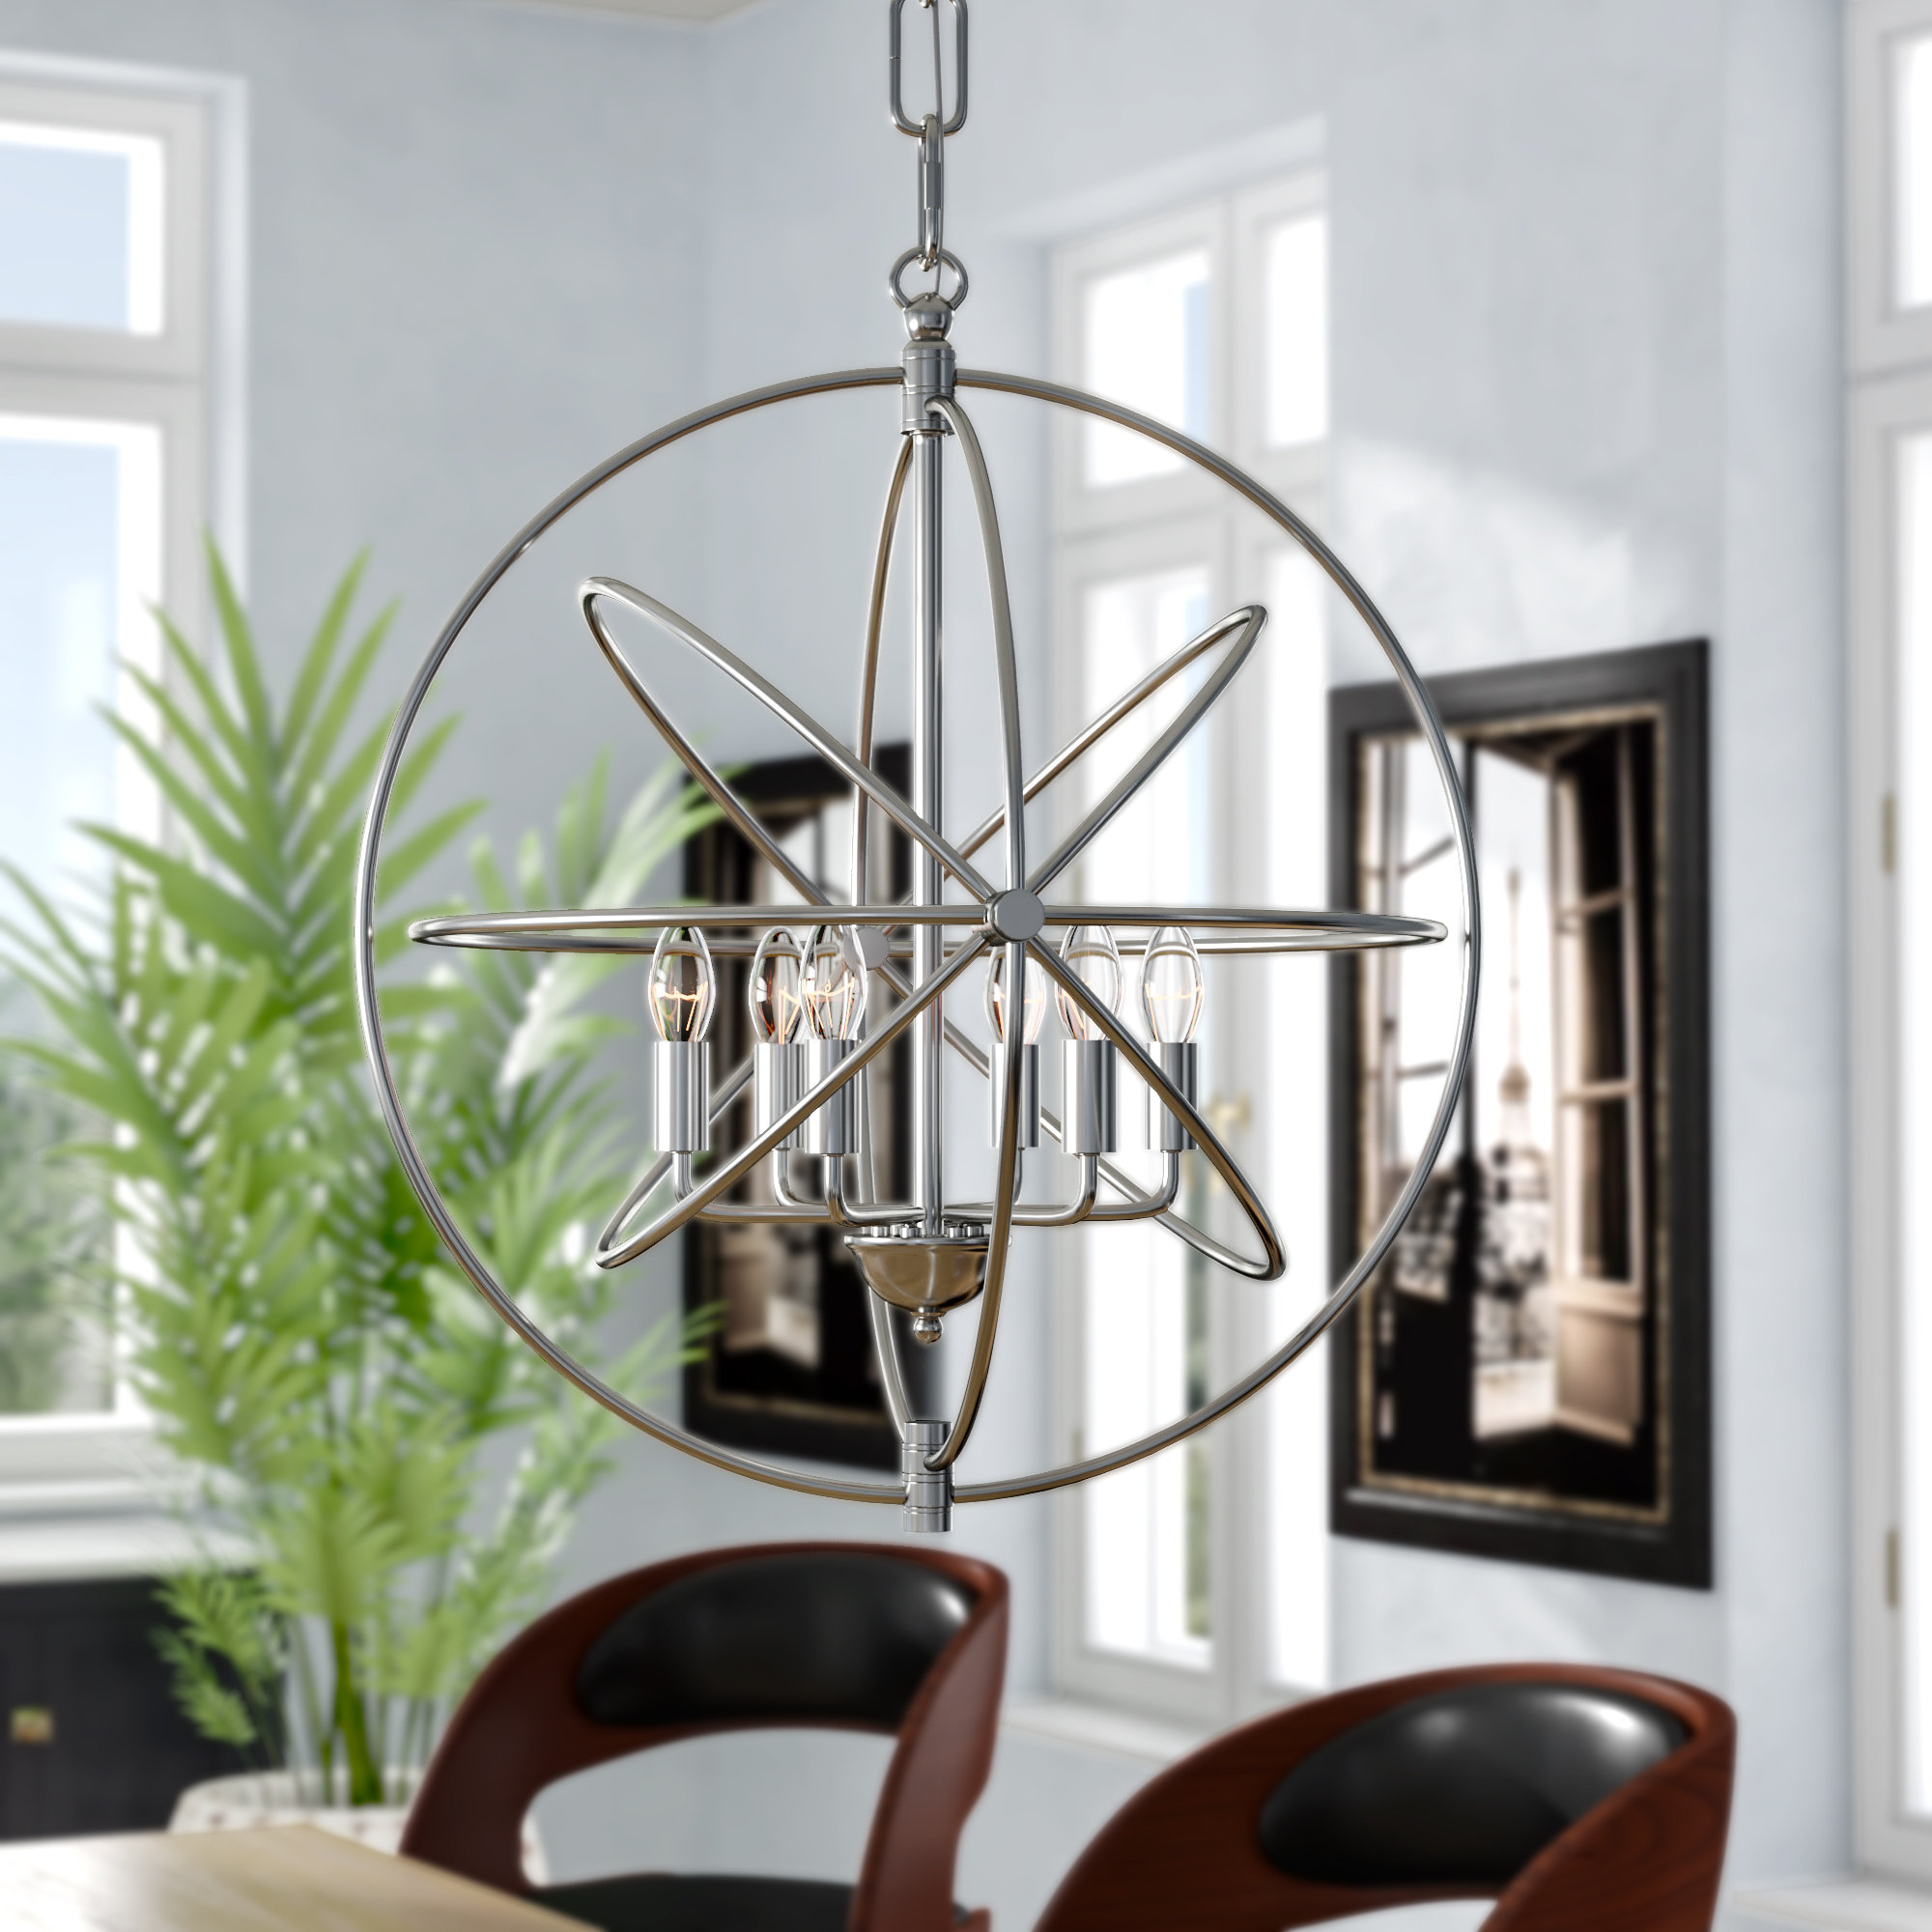 Hamby 6 Light Globe Chandelier With Recent Gregoire 6 Light Globe Chandeliers (Gallery 17 of 25)